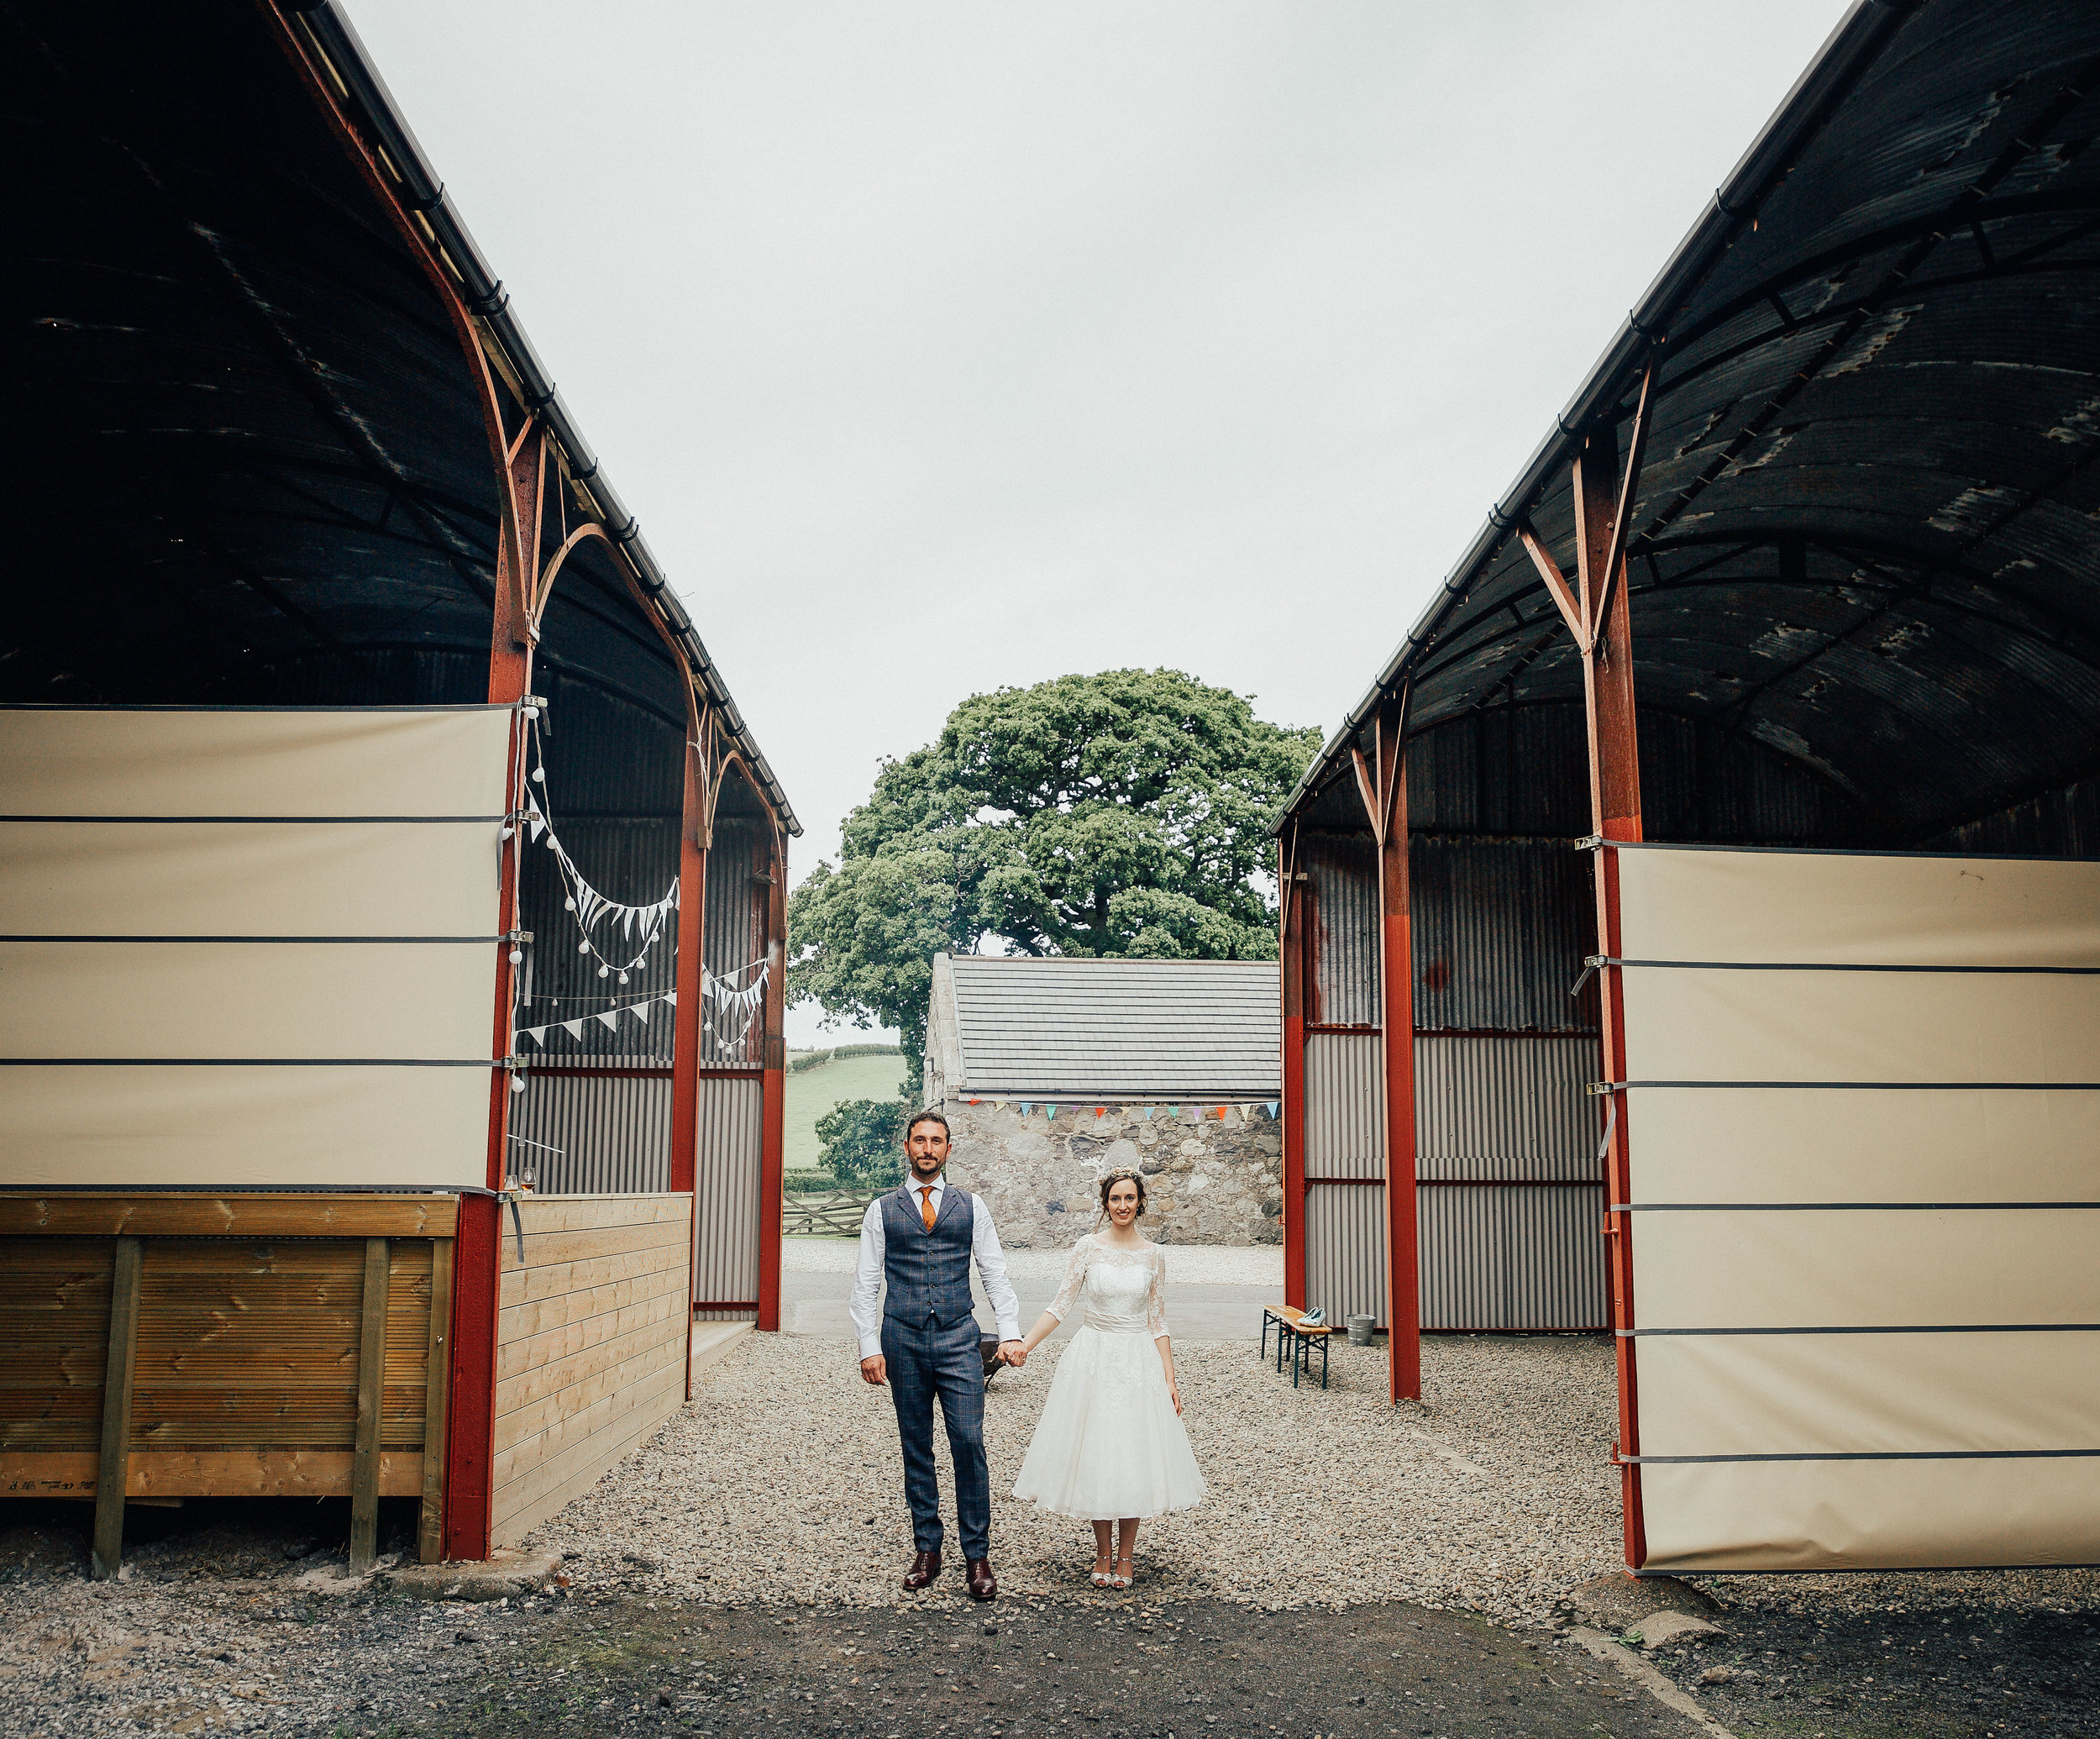 DALDUFF_FARM_COUNTRY_WEDDING_JASMINE_PHIL_PJ_PHILLIPS_PHOTOGRAPHY_93.jpg